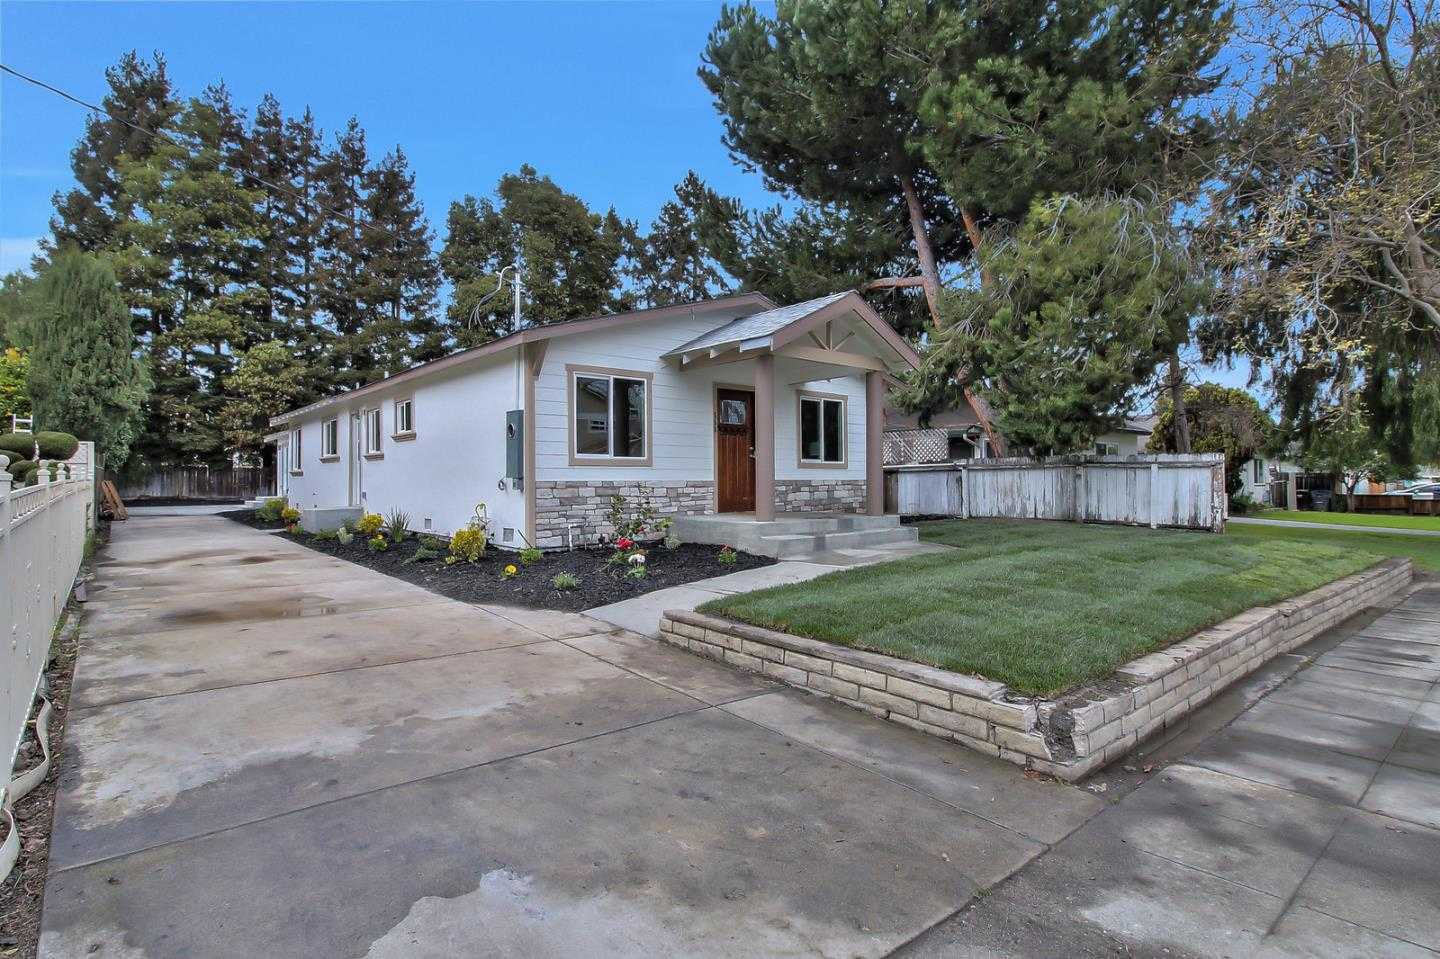 $1,999,998 - 4Br/3Ba -  for Sale in Sunnyvale